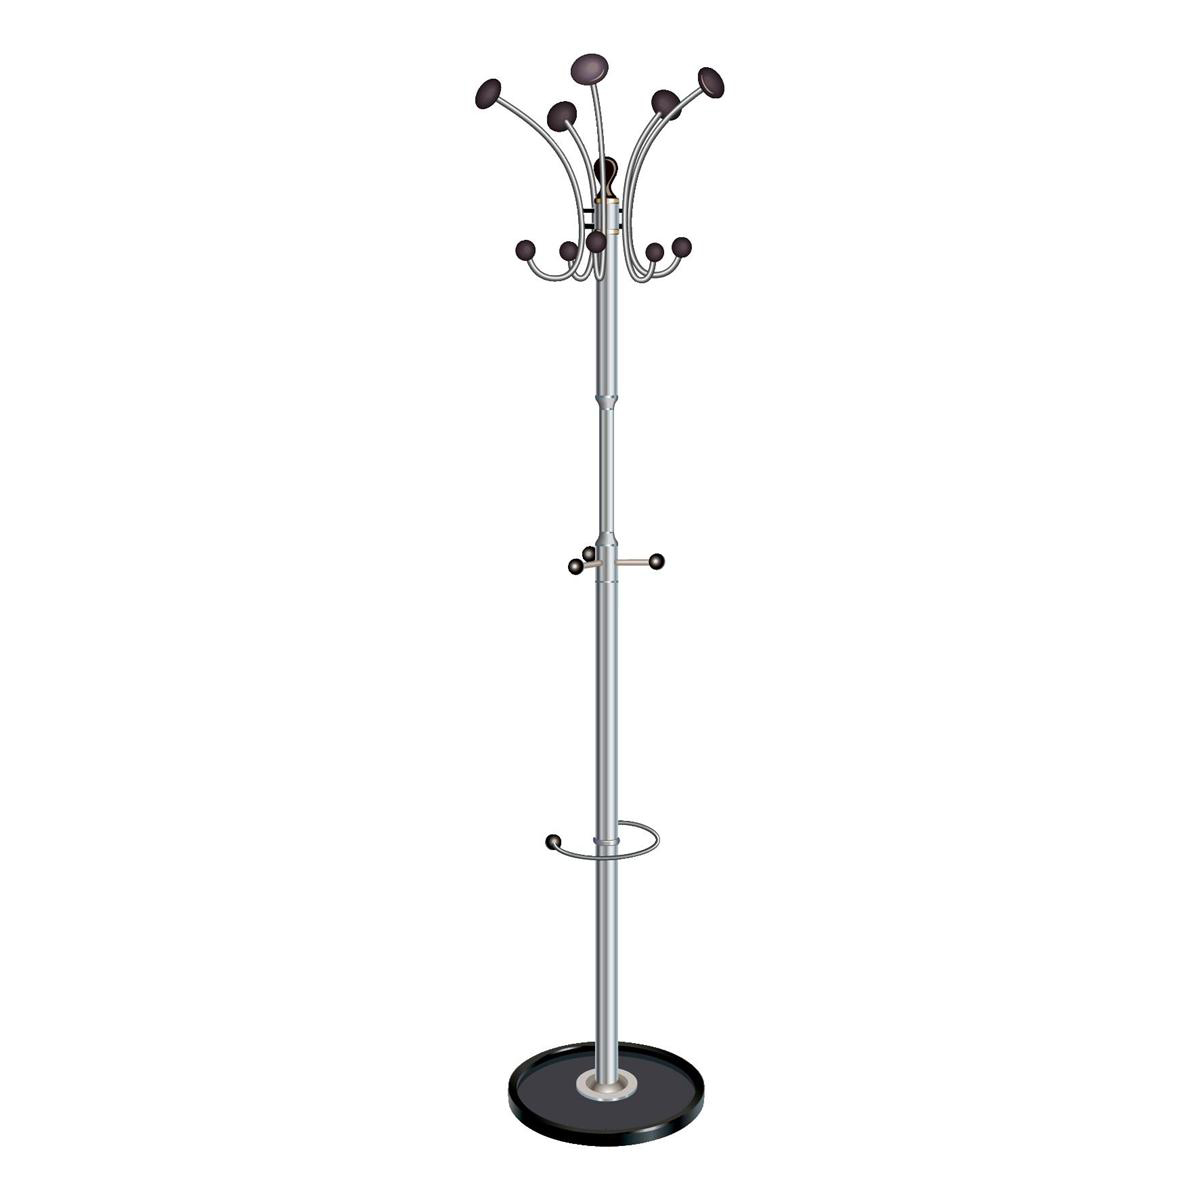 Grid Coat Rack In Office Accessories: 5 Star Facilities Coat Stand With Revolving Head 5 Pegs 5